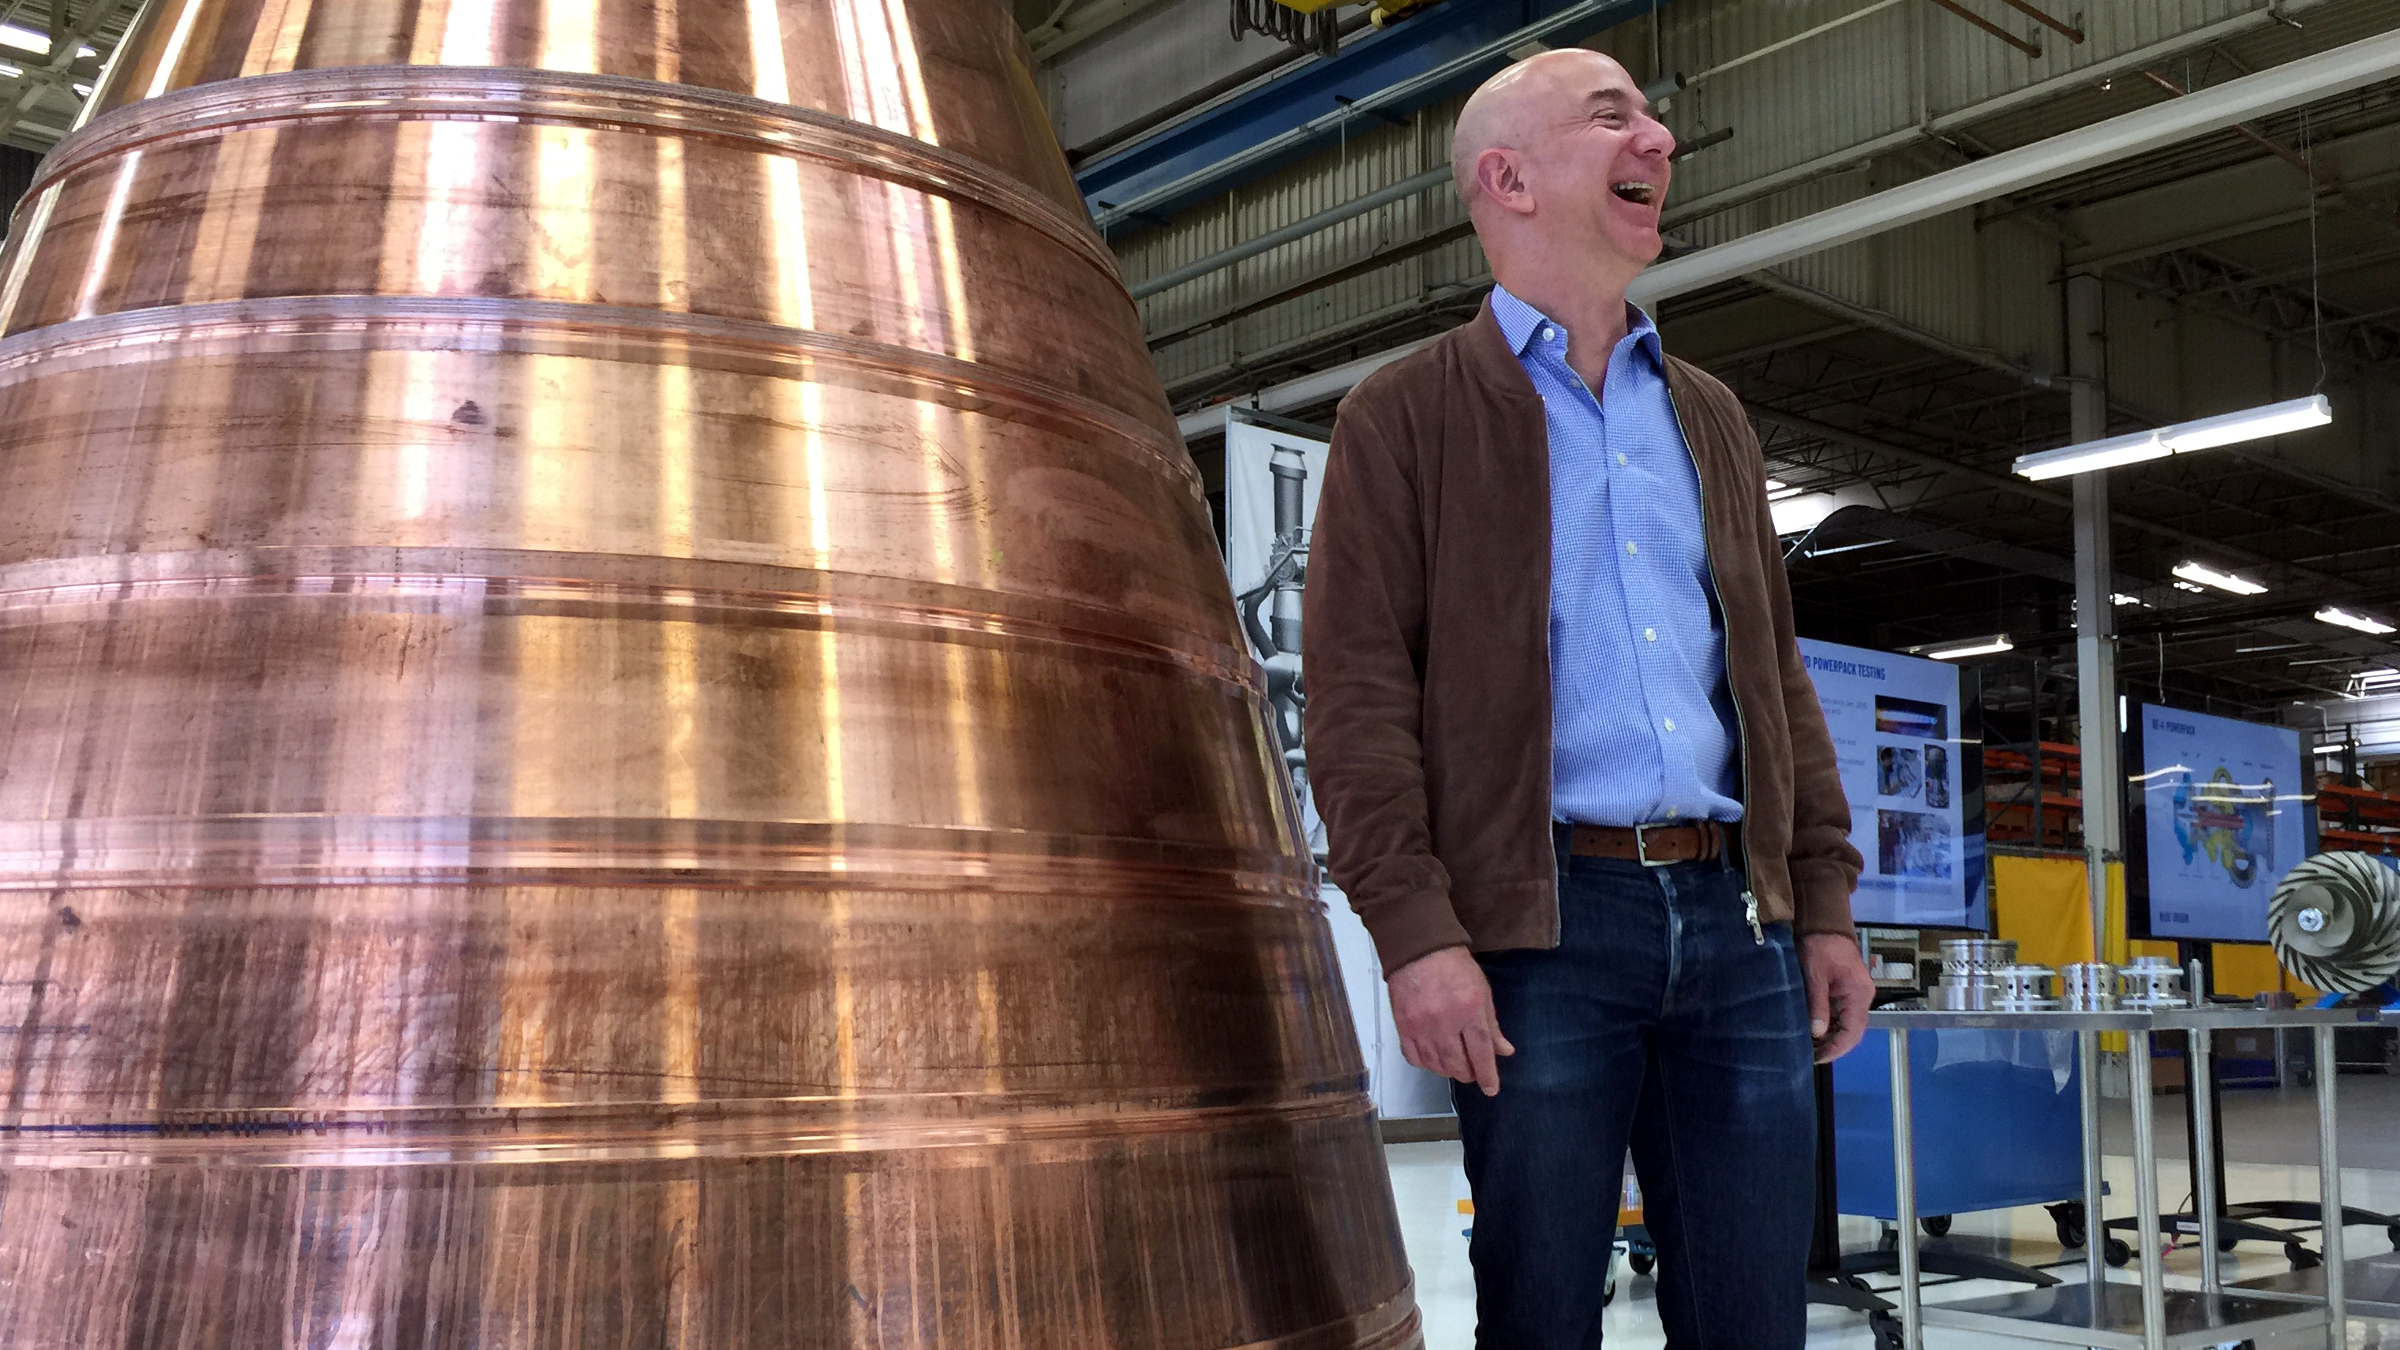 Amazon.com founder Jeff Bezos stands next to a copper exhaust nozzle to be used on a space ship engine during a media tour of Blue Origin, the space venture he founded, Tuesday, March 8, 2016, in Kent, Wash. The private space company opened its doors to the media for the first time on Tuesday to give a glimpse of how organizations like Blue Origin are creating the next generation of rockets for private and public use.